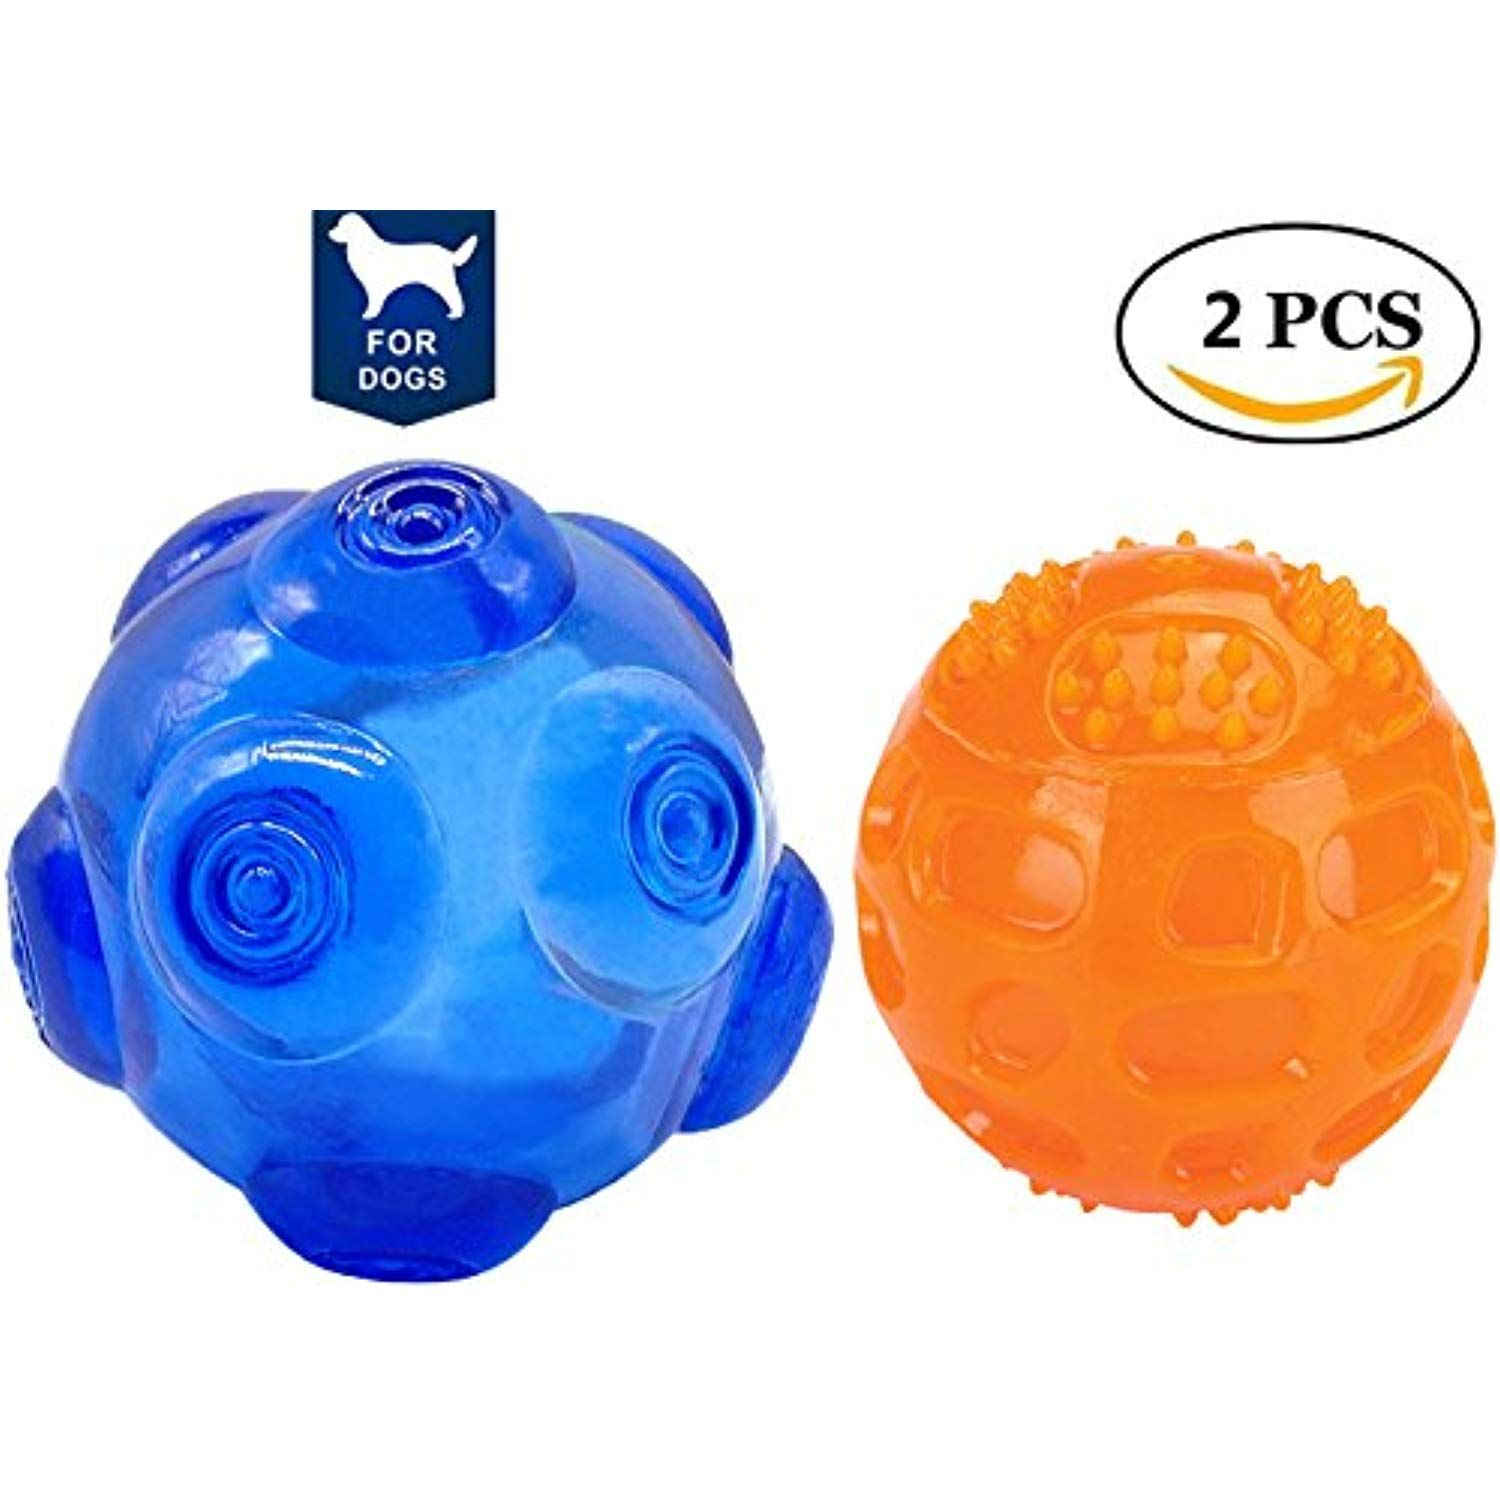 Squeaky Fetch Toy Ball Unicool Durable Soft Non Toxic Nature